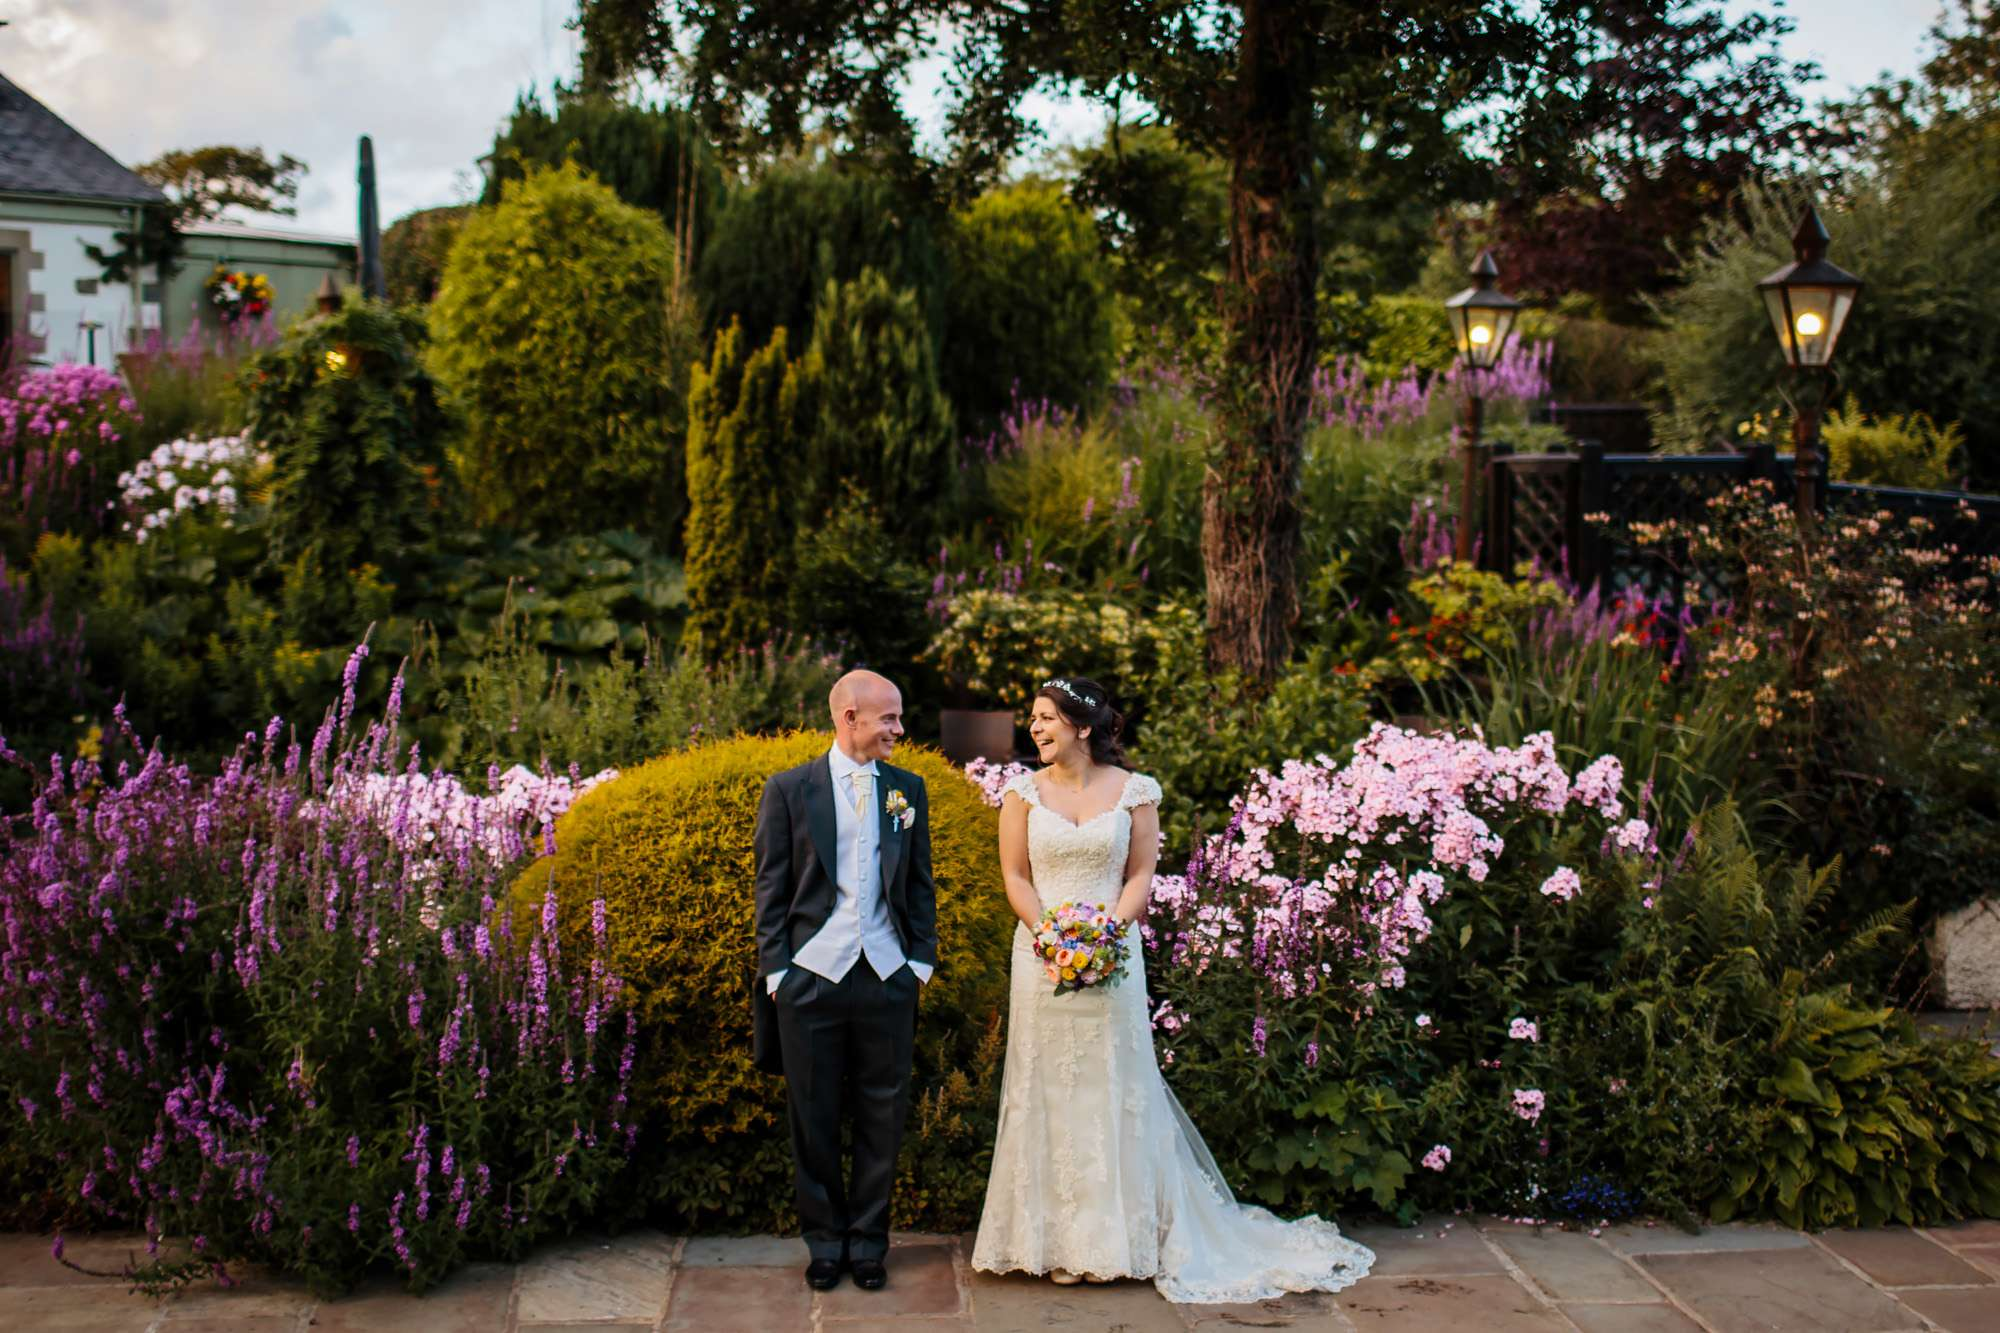 Bride and groom laughing in front of a flower bed in Yorkshire